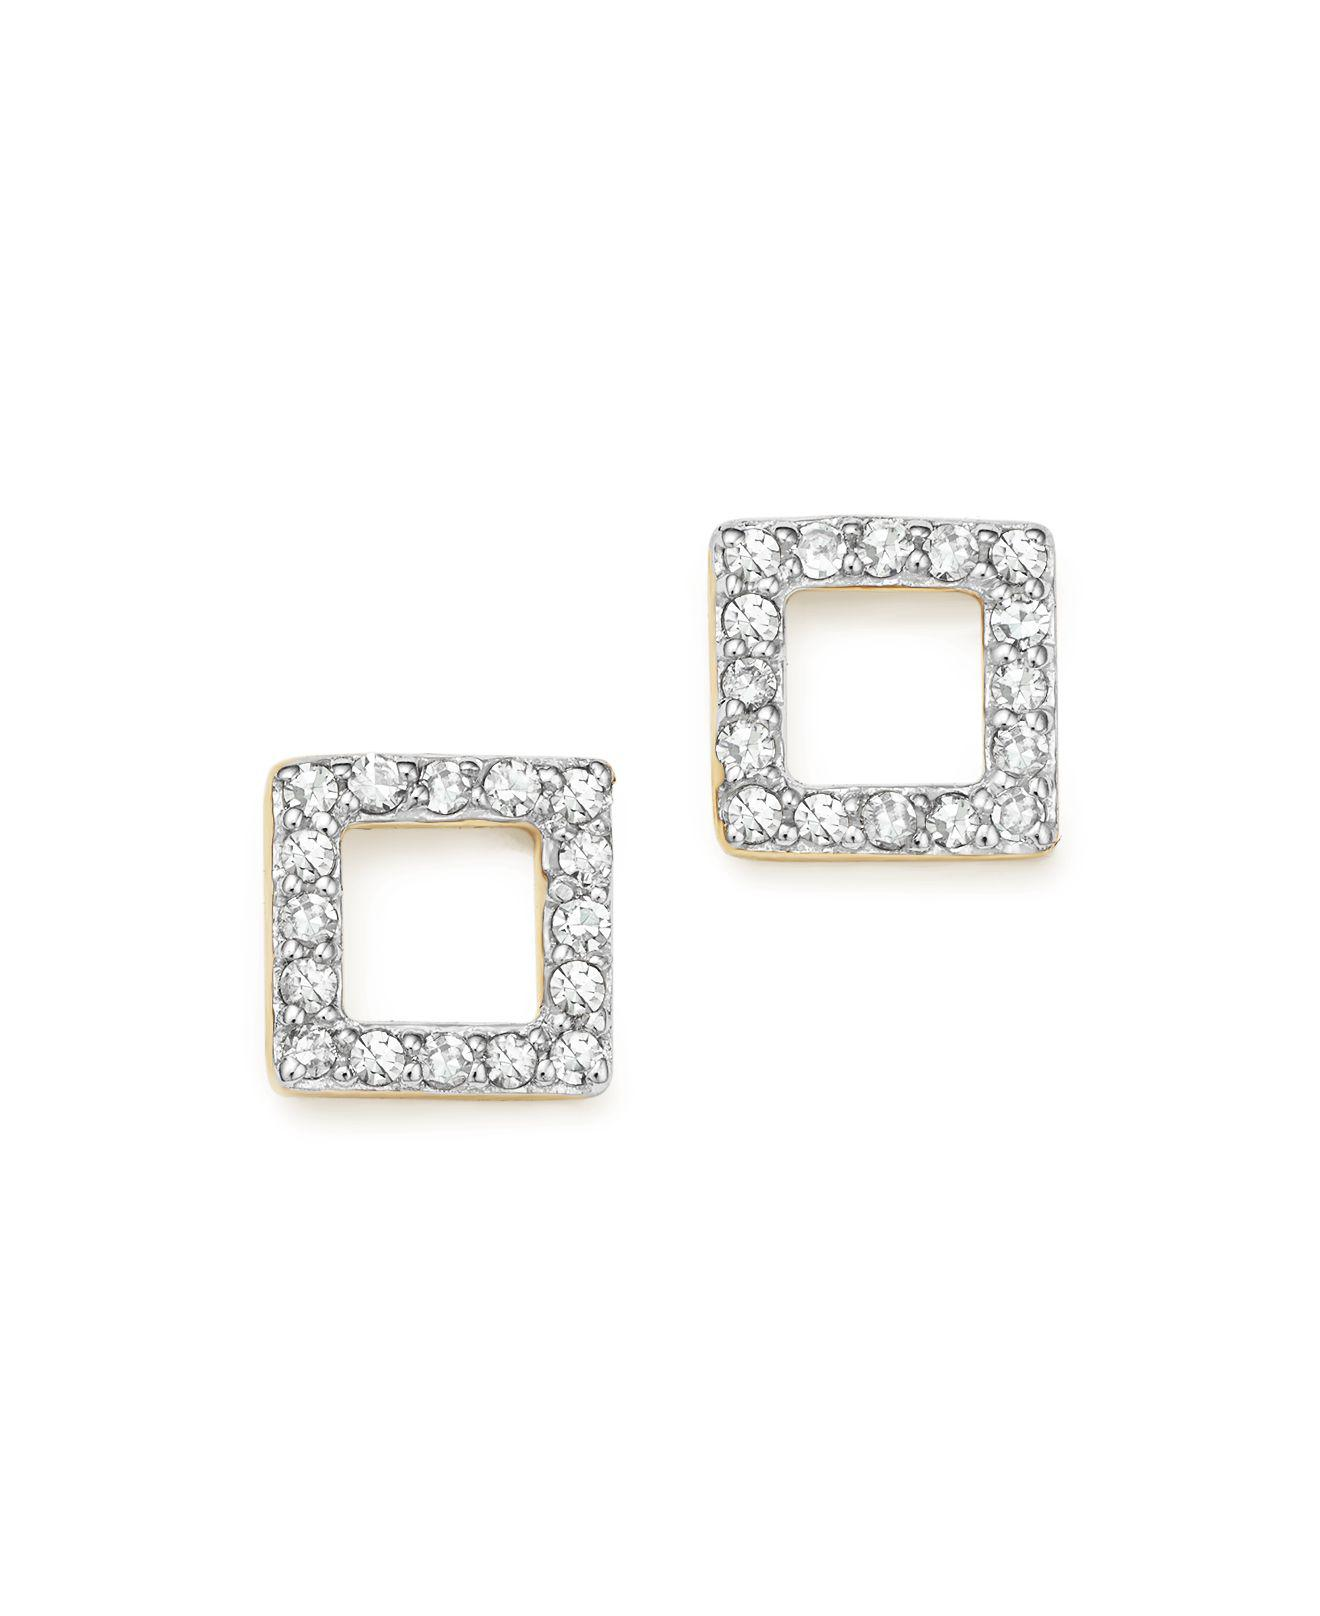 E.M. square studded earring - Metallic lwVRCHpc0